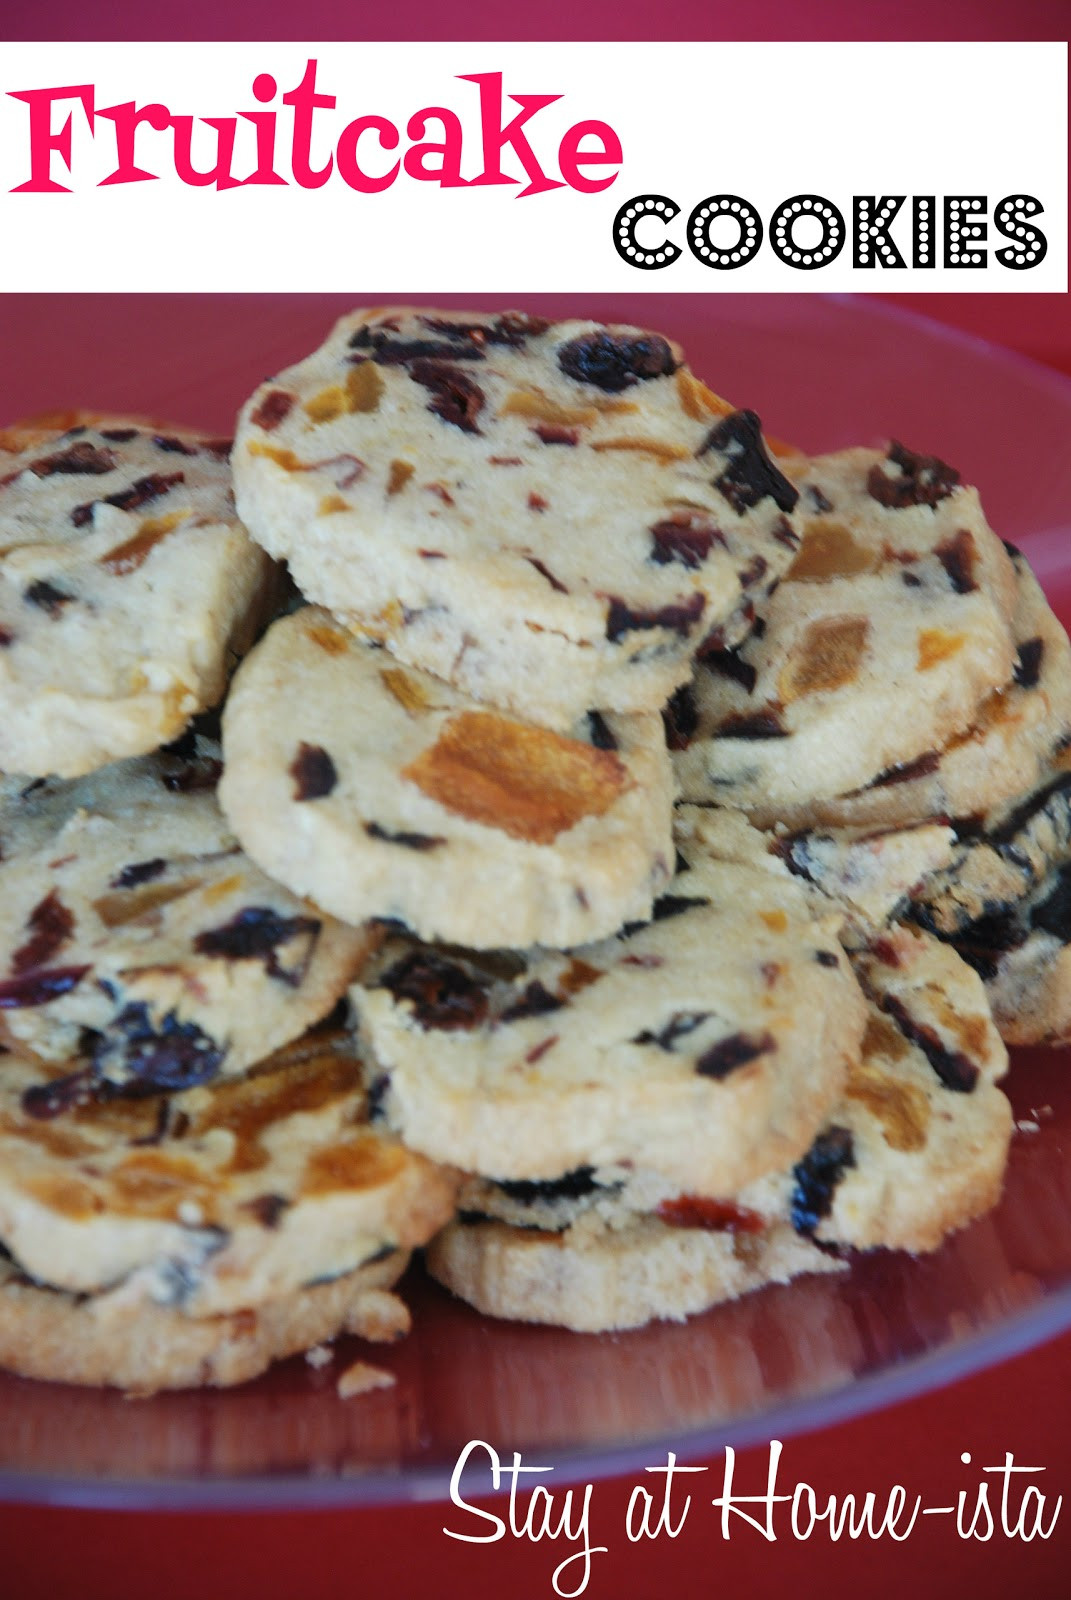 Ina Garten Christmas Cookies  Stay at Home ista Fruitcake Cookies